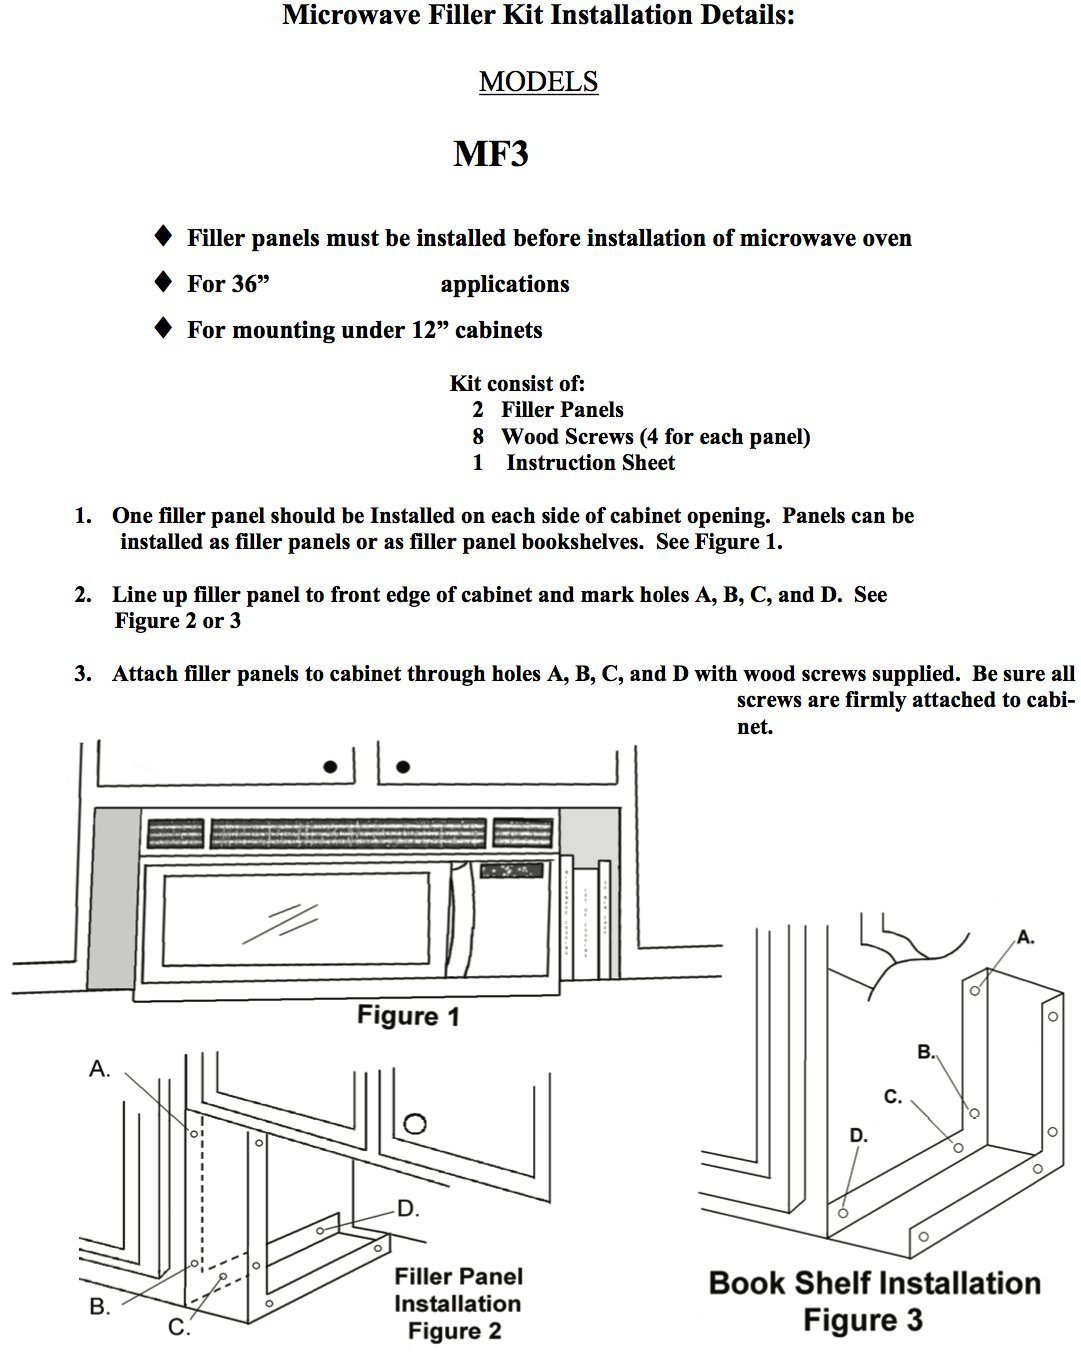 Installation of an over the range microwave - Amazon Com Universal Stainless Steel Over The Range L Shaped Microwave Fill Filler Kit Fills A 36 Wide By 15 3 4 Tall Spot Mf3 Ss Appliances